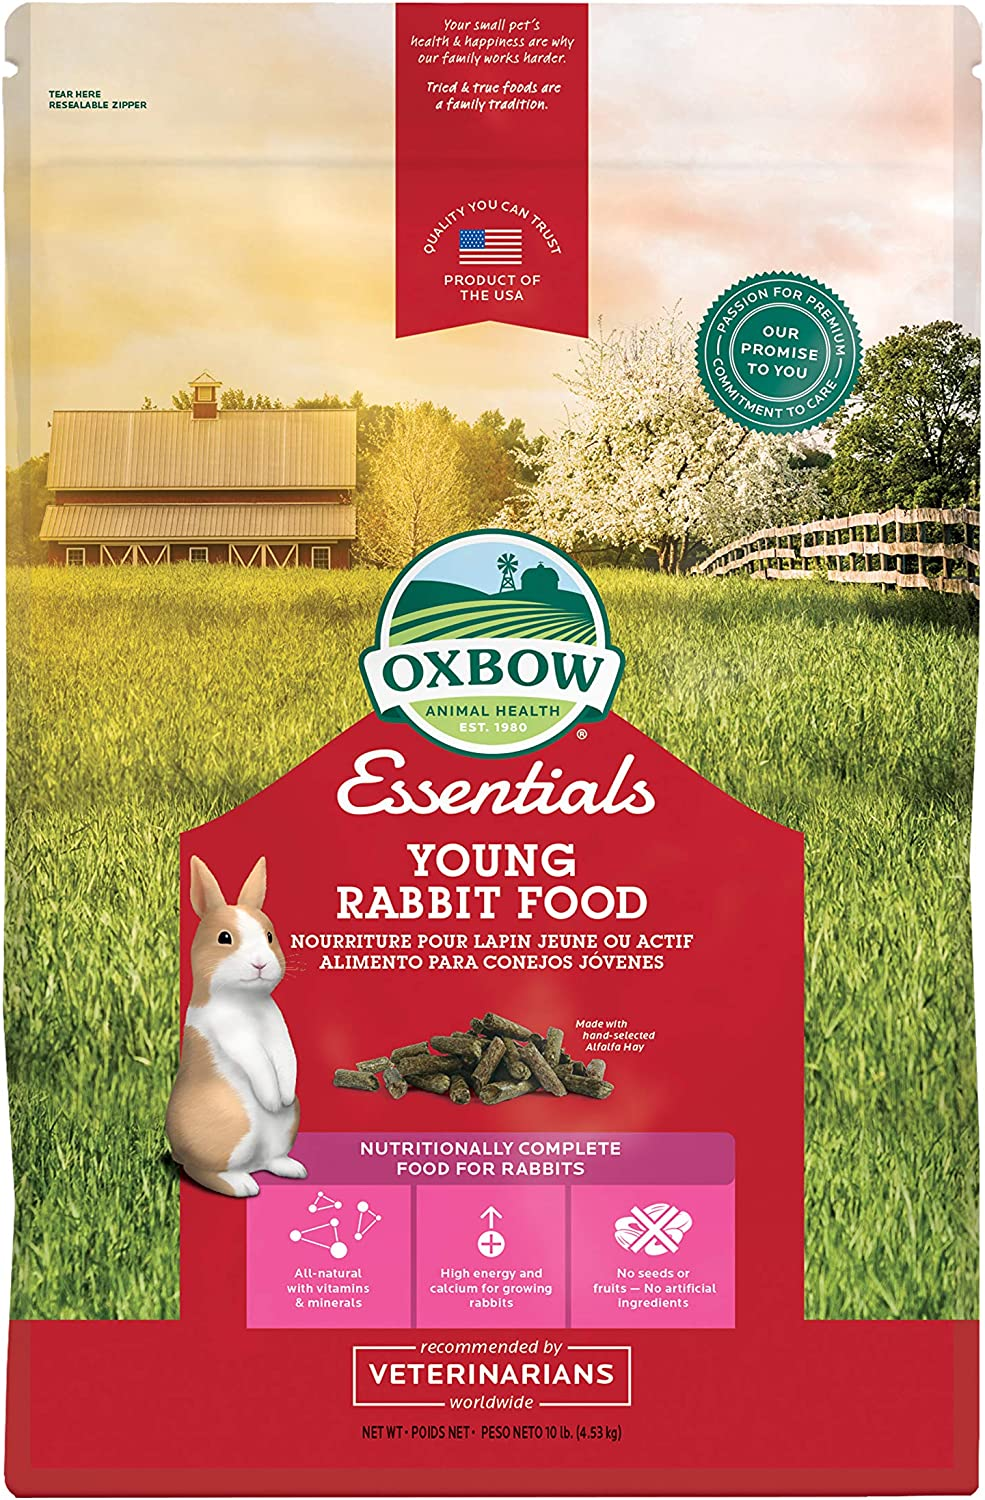 Oxbow Animal Health Bunny Basics Essential